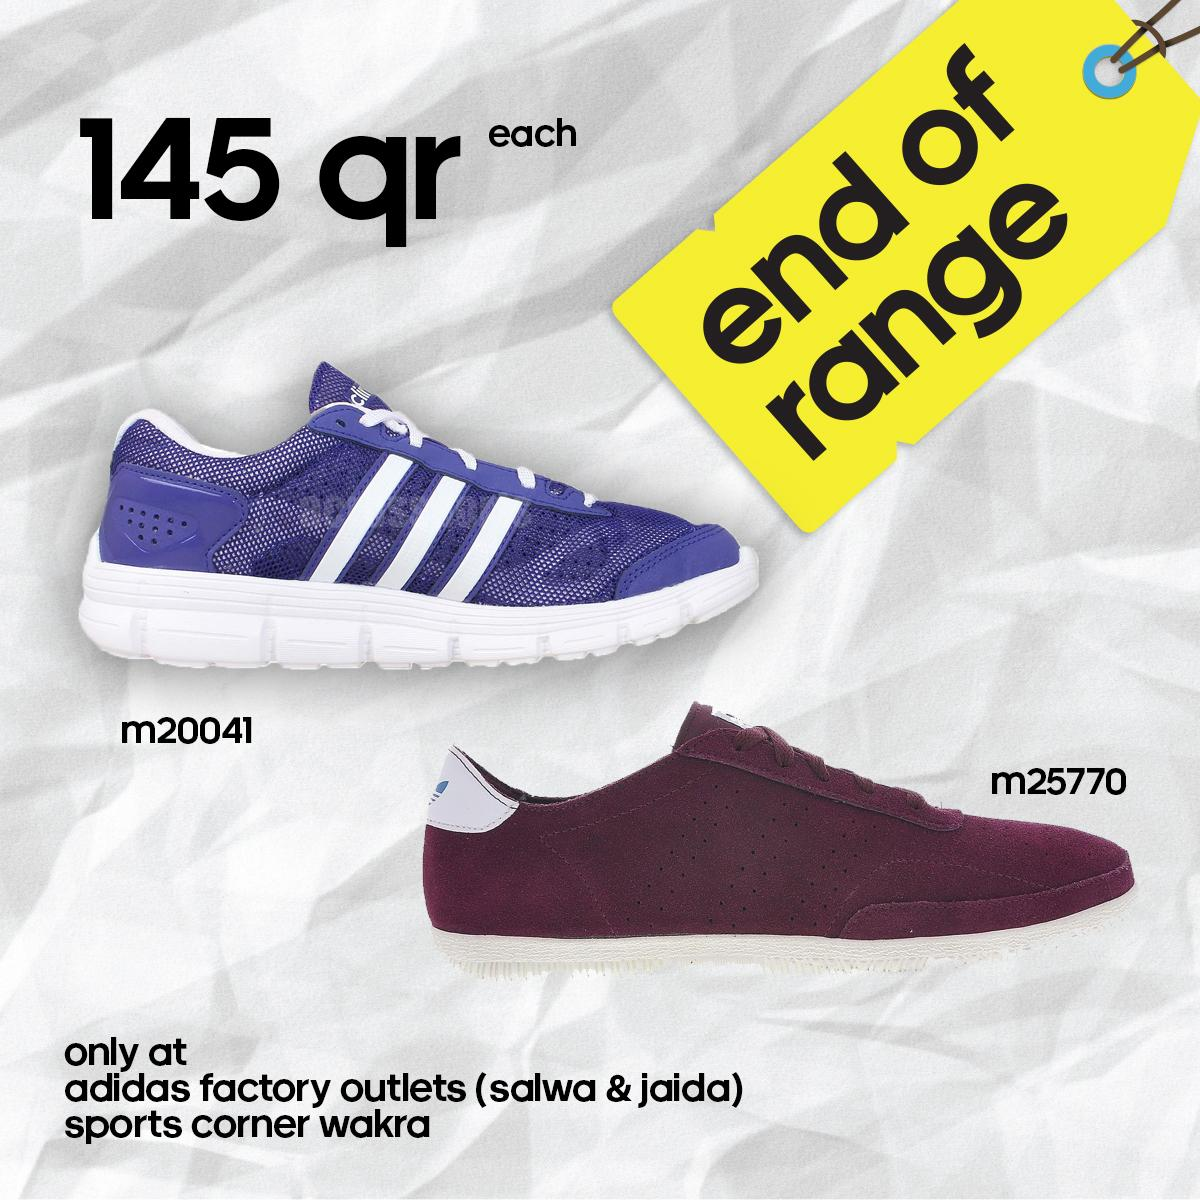 adidas factory outlet sale qatar